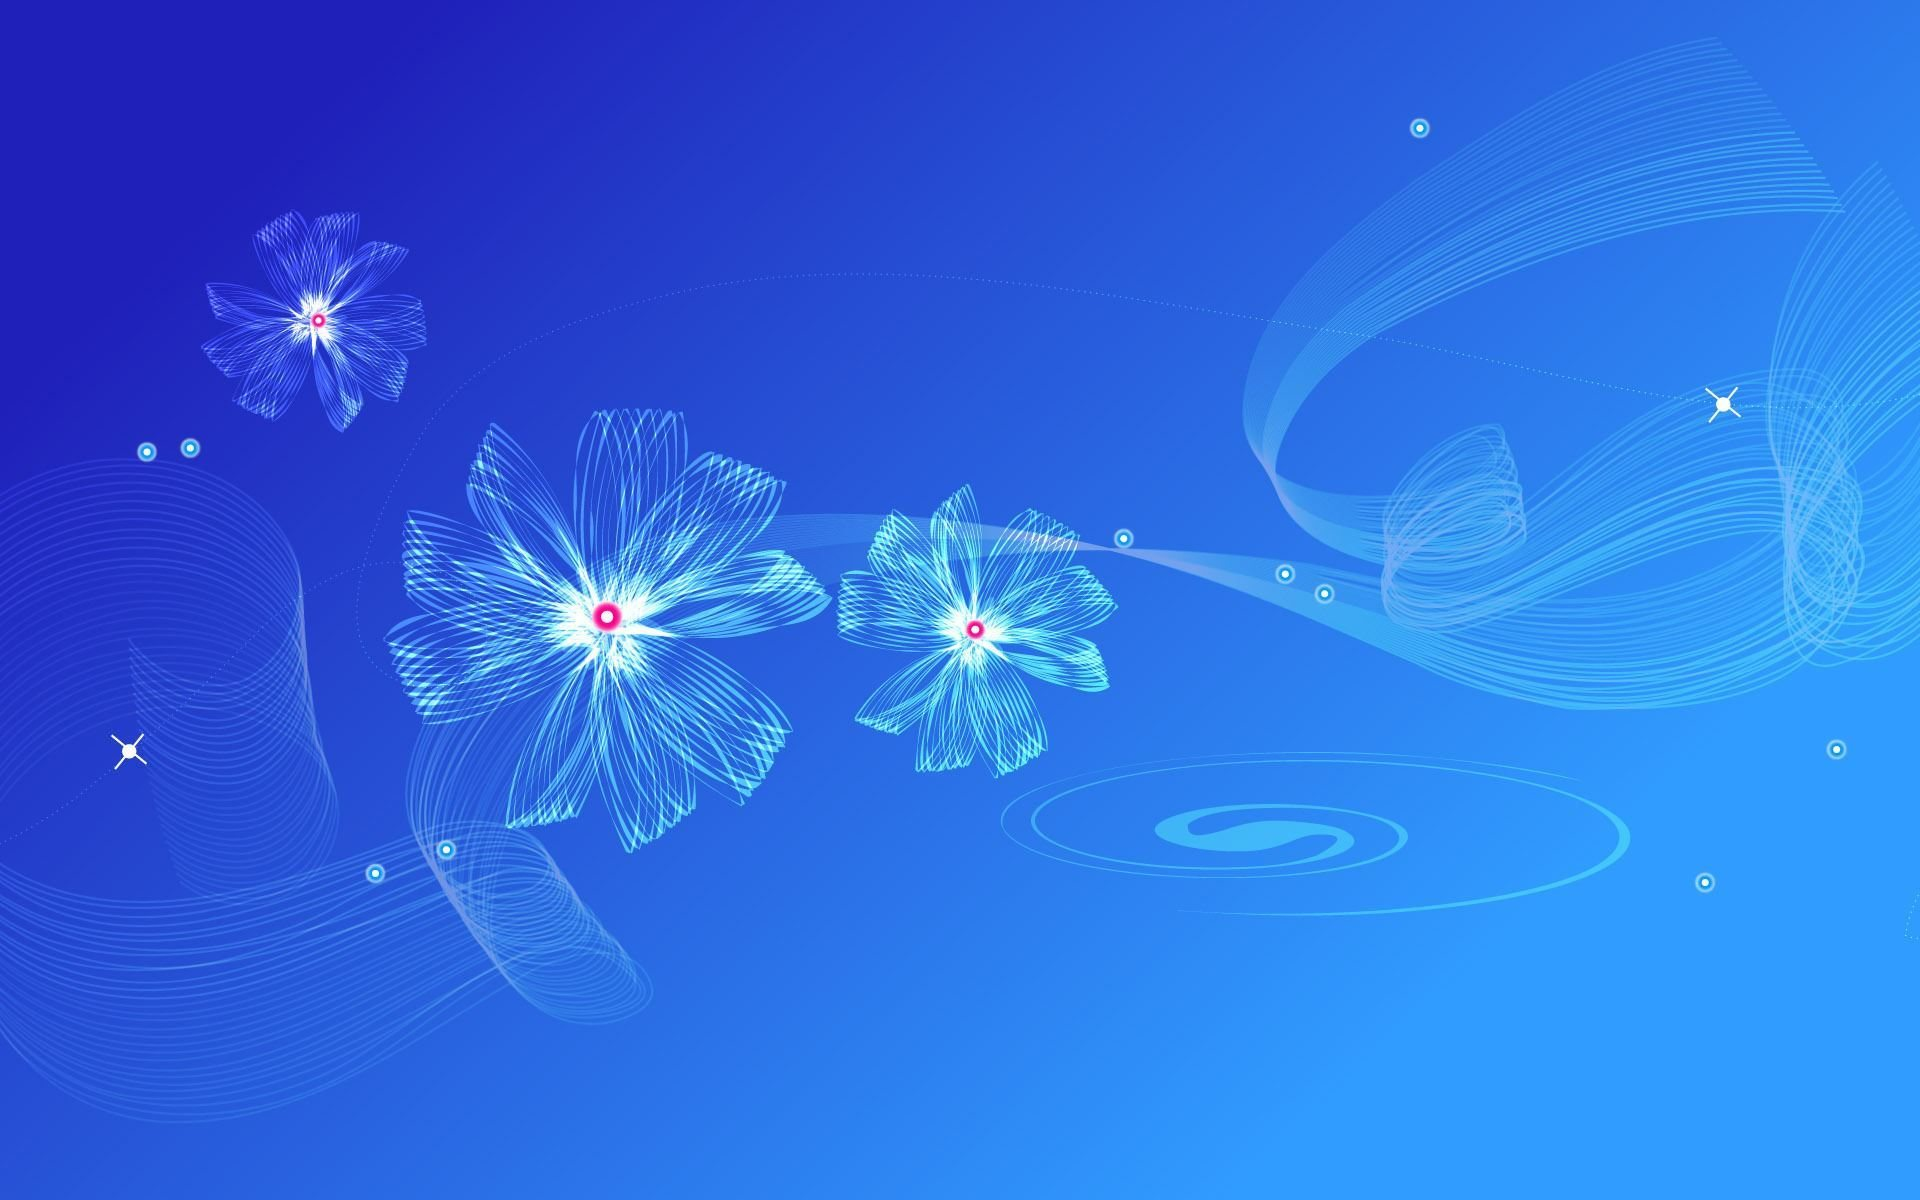 Abstract Blue | Full HD Desktop Wallpapers 1080p